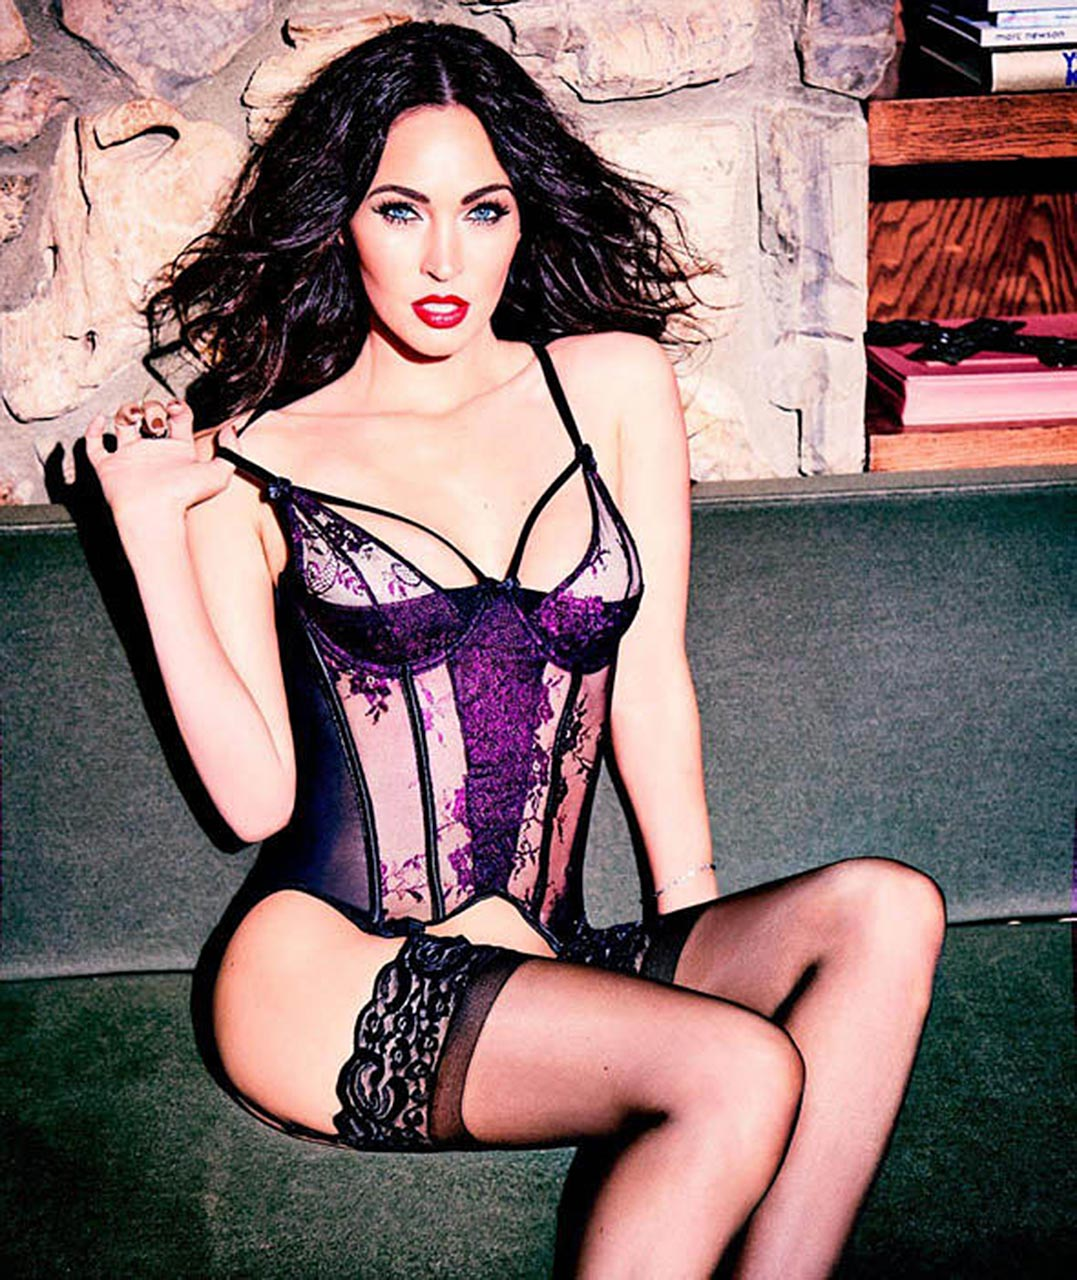 Sexy nude pics of megan fox